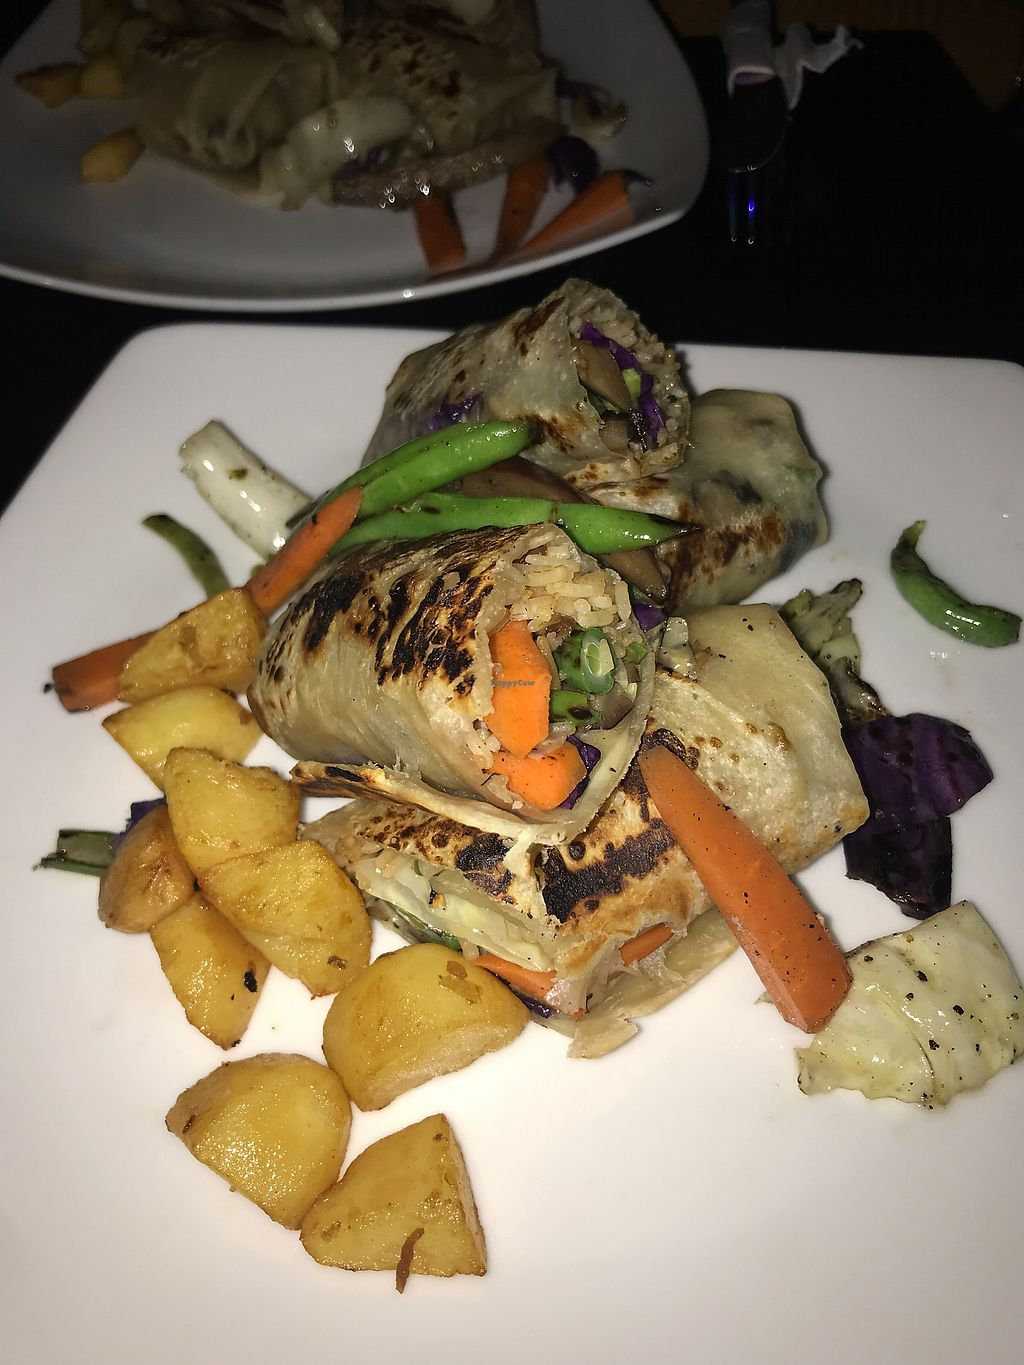 """Photo of Reincarnation - Rainbow Inn  by <a href=""""/members/profile/erinolivia"""">erinolivia</a> <br/>Grilled veggie and rice burrito  <br/> January 11, 2018  - <a href='/contact/abuse/image/92113/345478'>Report</a>"""